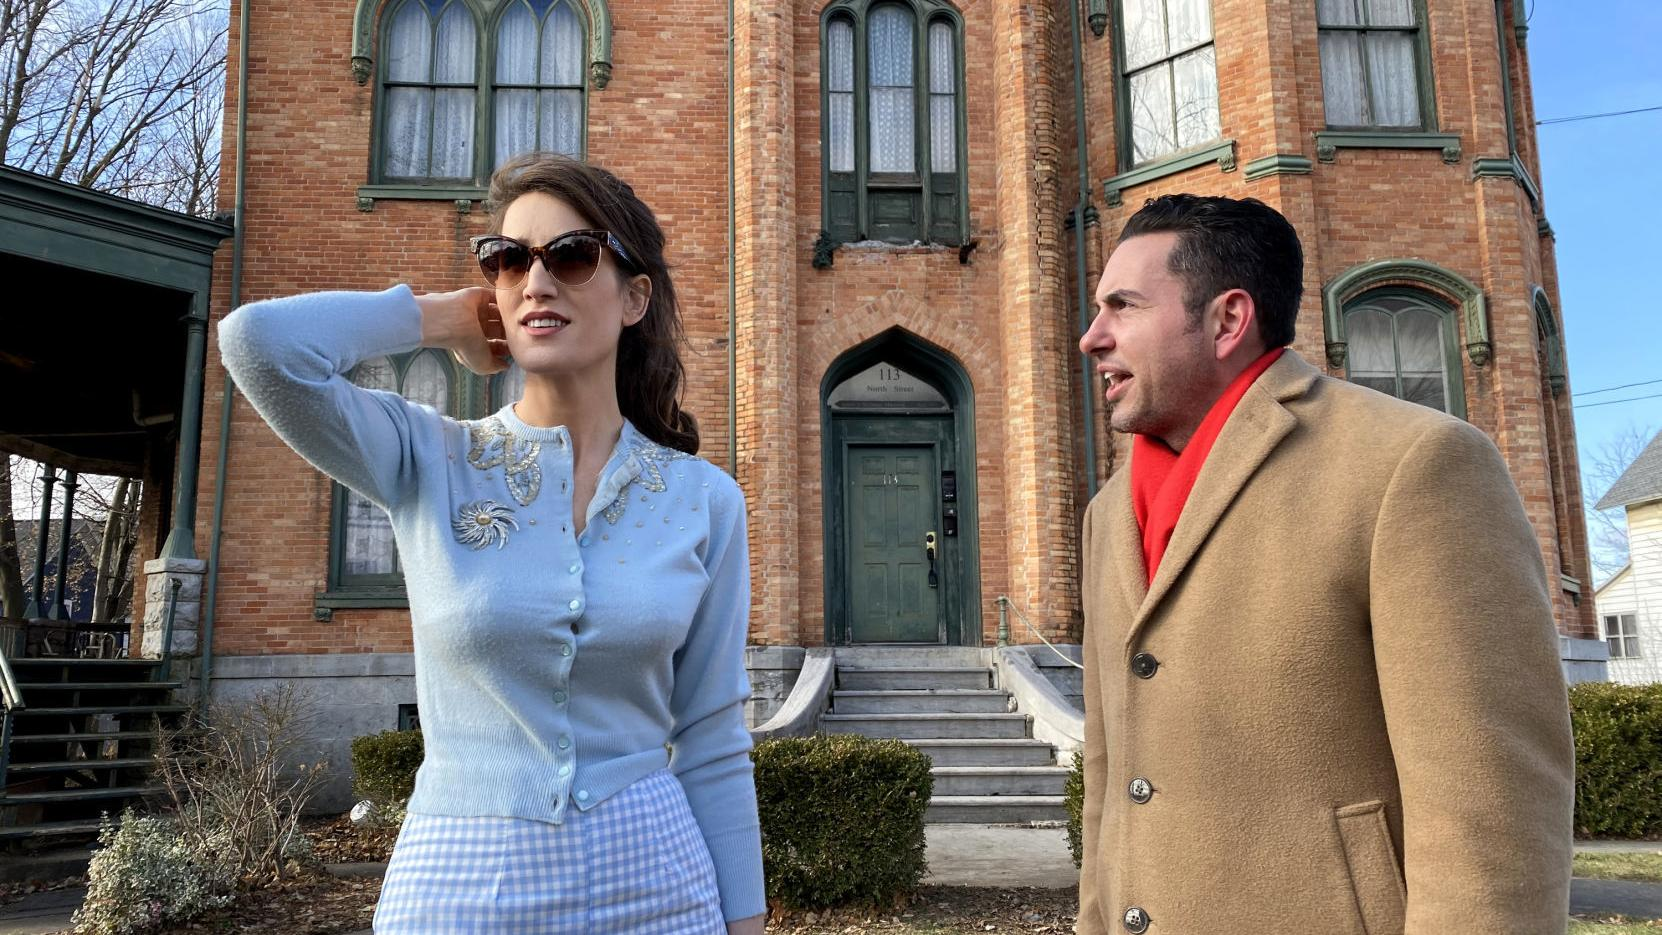 It S Just So Beautiful Netflix Star Submits Offer For Auburn Mansion Local News Auburnpub Com